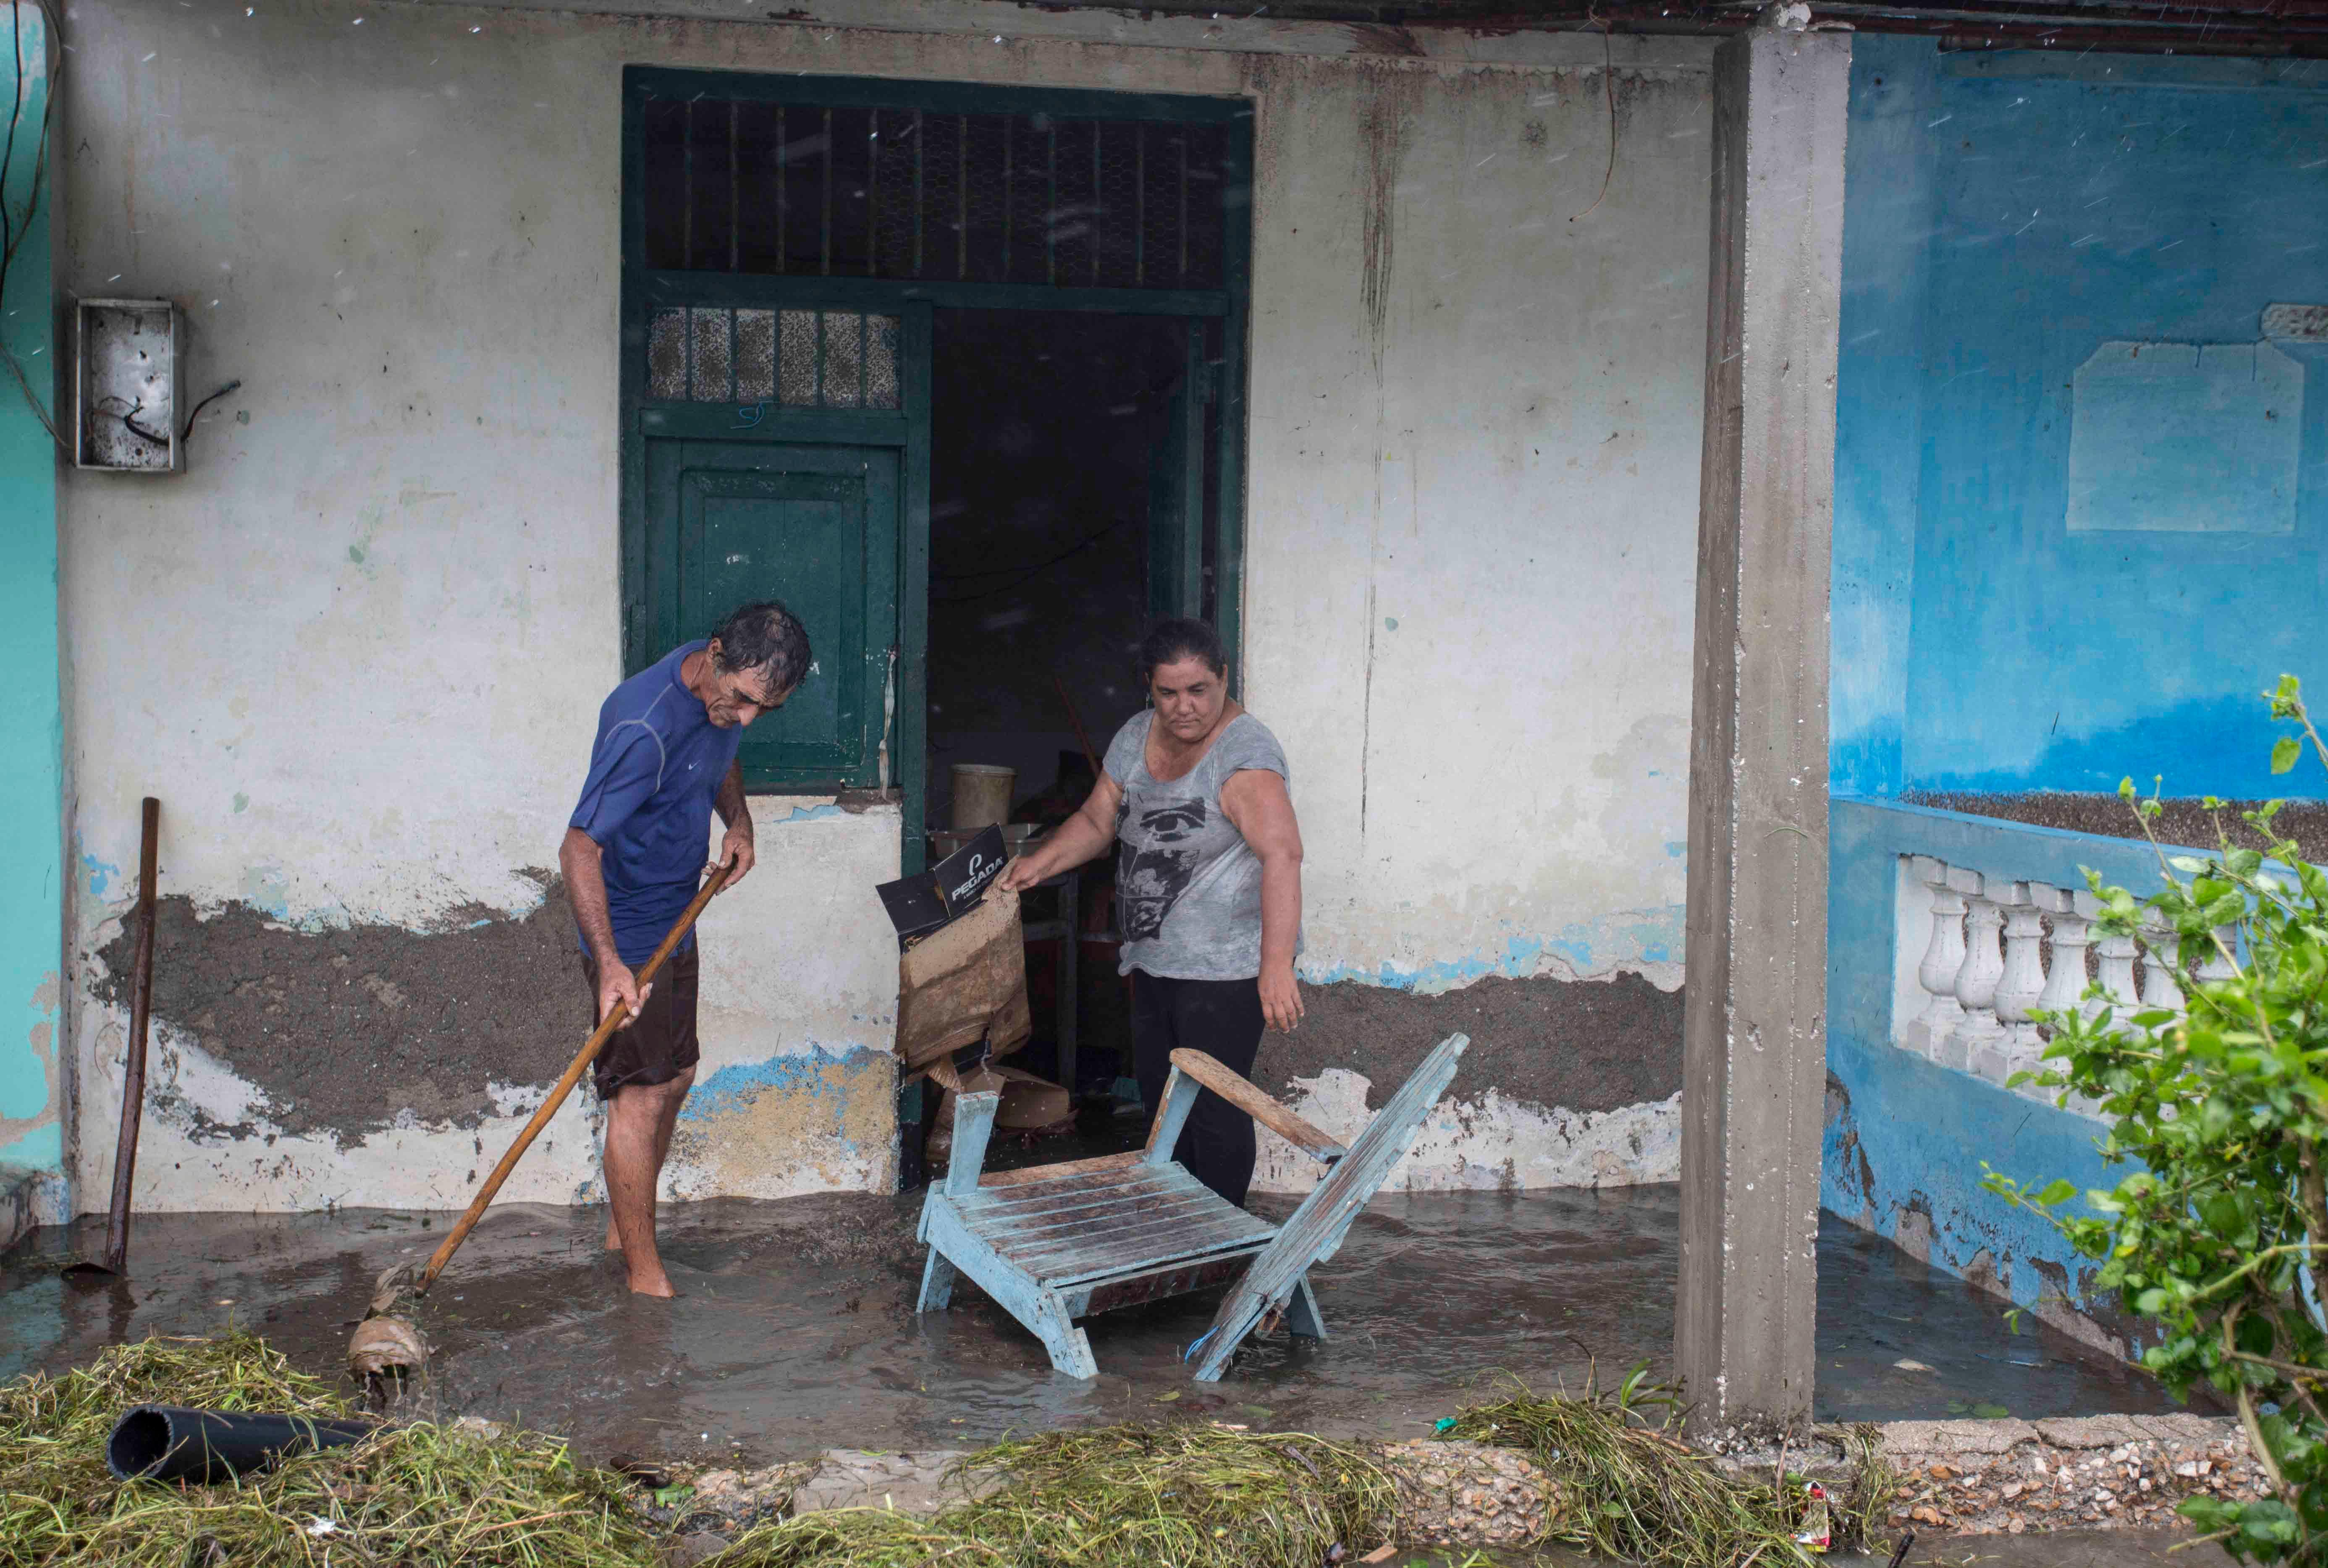 Residents begin the task of cleaning their flooded homes in the aftermath of Hurricane Irma, in Caibarien, Cuba, Saturday, Sept. 9, 2017. There were no reports of deaths or injuries after heavy rain and winds from Irma lashed northeastern Cuba. Seawater surged three blocks inland in Caibarien. (AP Photo/Desmond Boylan)